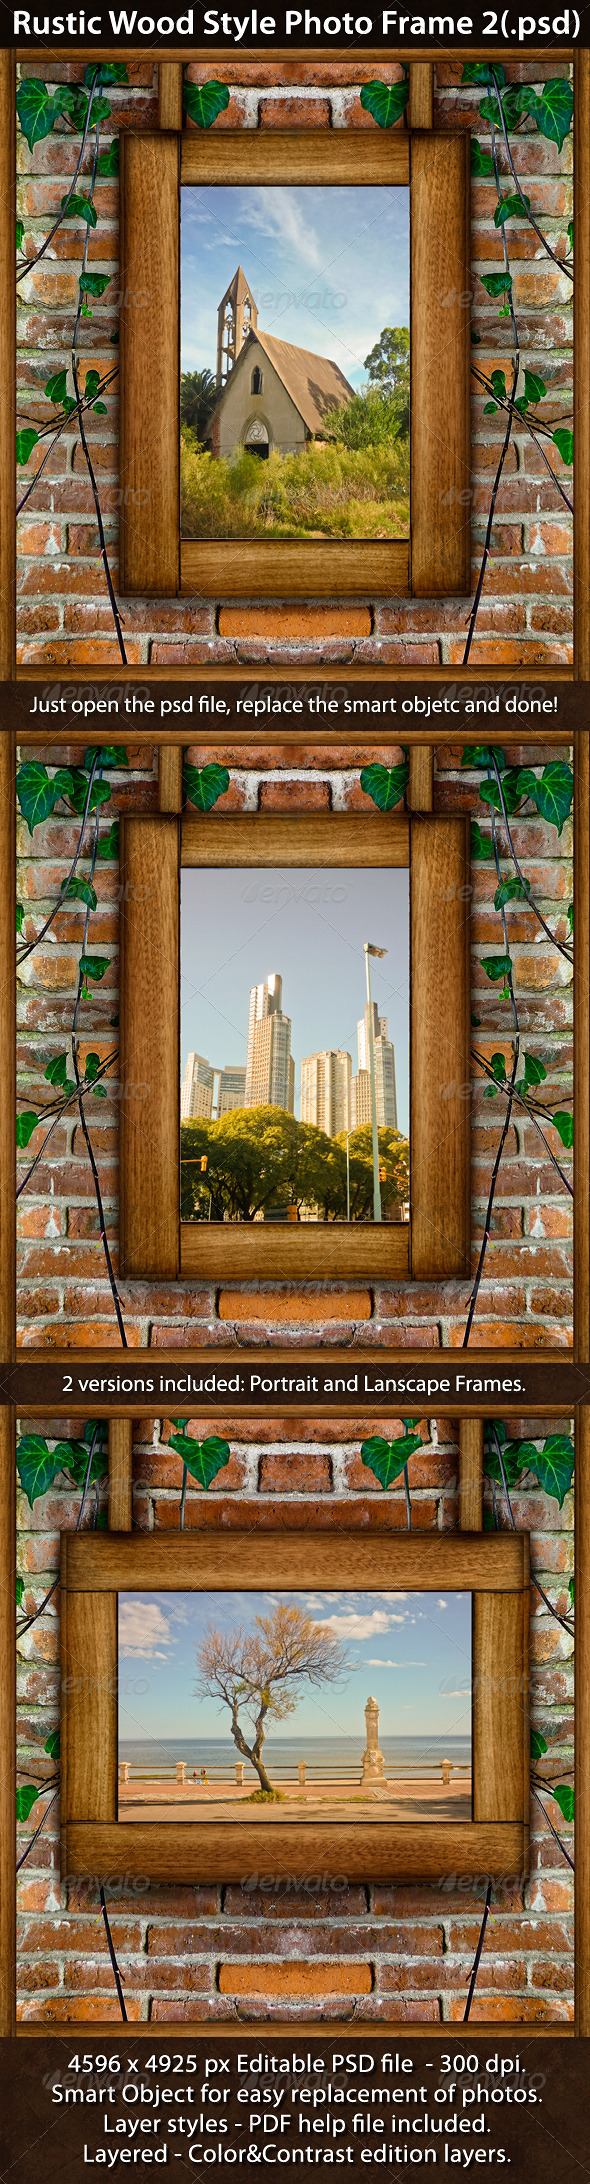 Rustic Wood Style Photo Template 2 - Urban Photo Templates